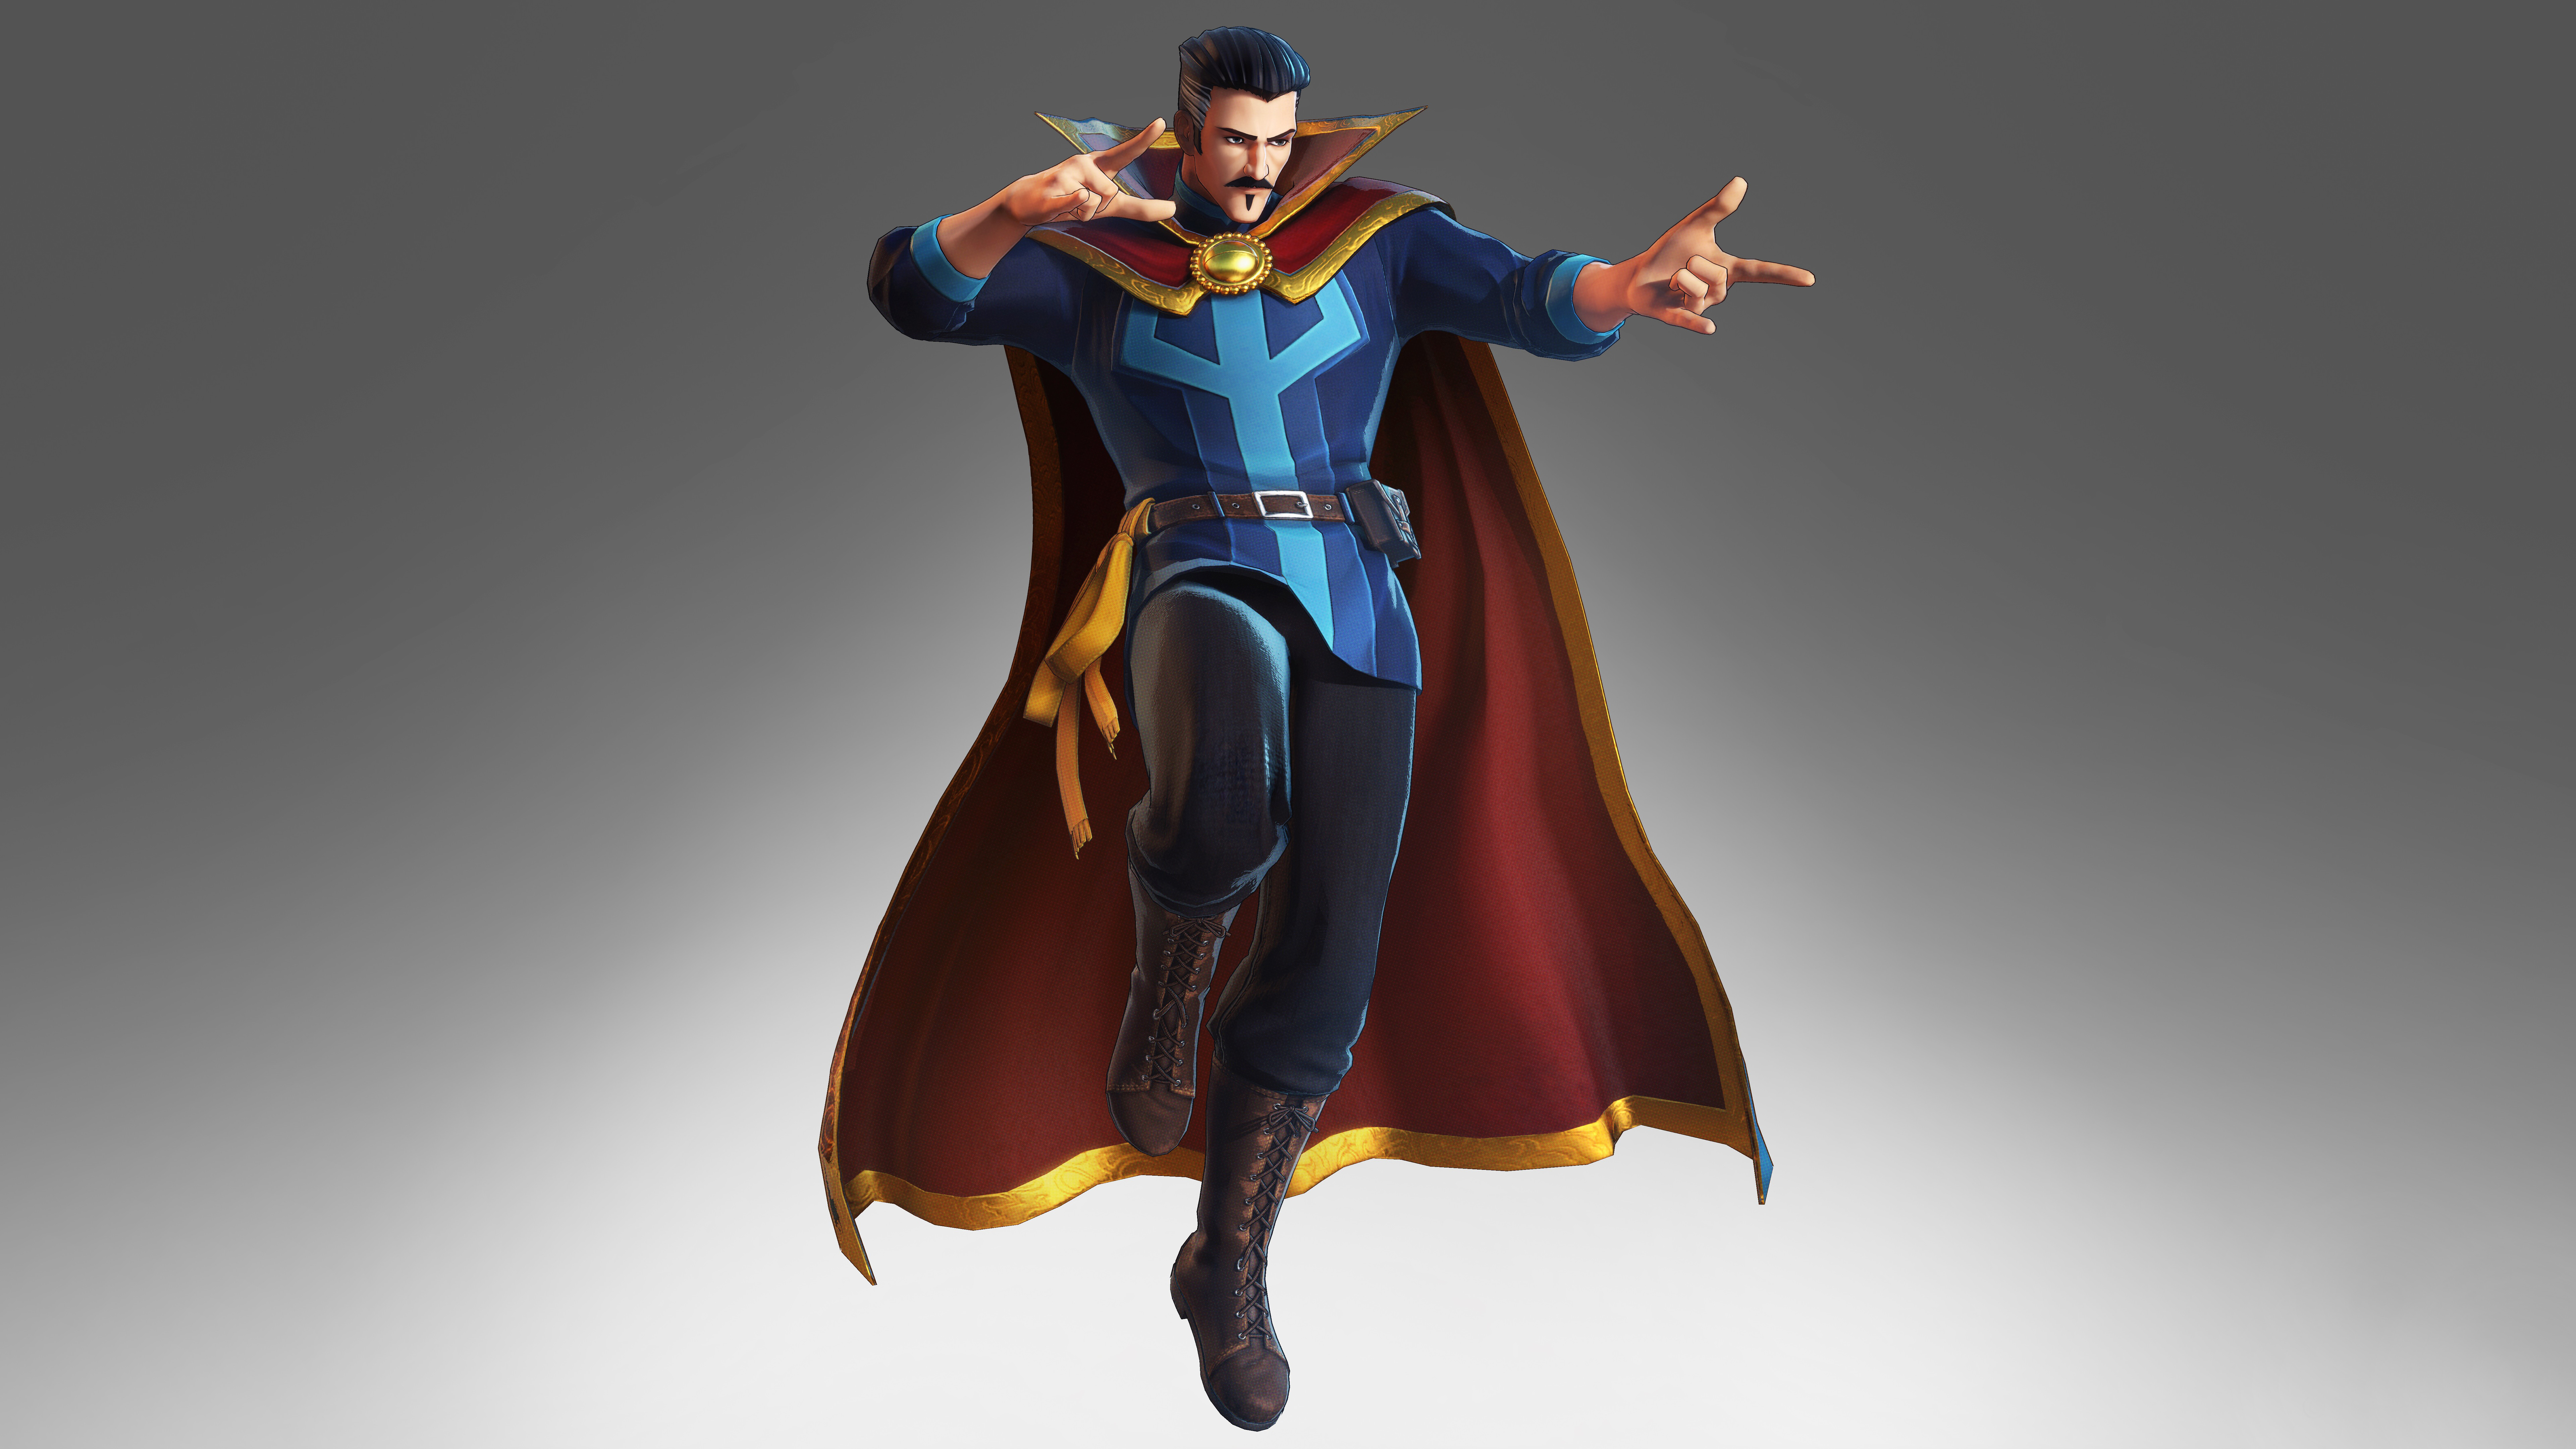 6. Ultimate Doctor Strange. The Ultimate Universe version of Strange is a powerful one. He is more powerful than his father Doctor Strange Sr. He is another gifted magician who is able to wield a variety of powers.